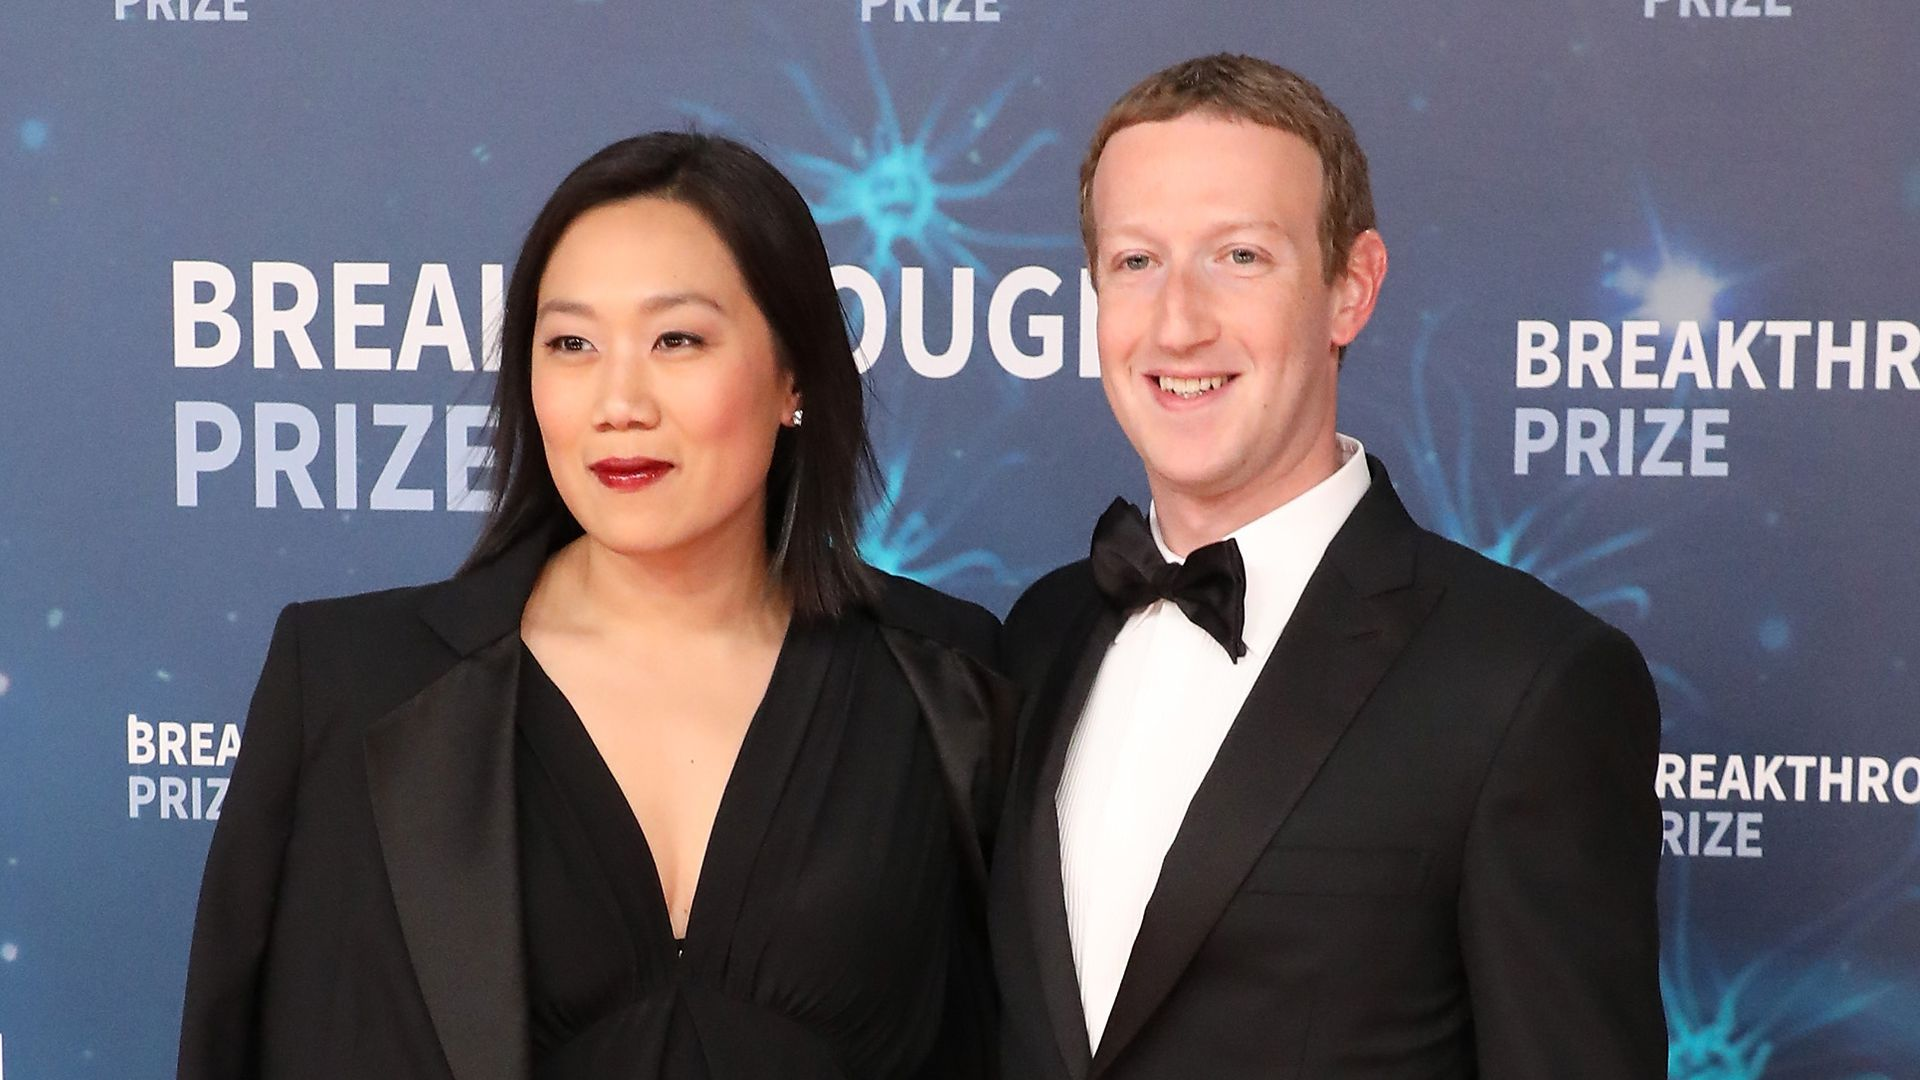 Priscilla Chan and Mark Zuckerberg attend the 2020 Breakthrough Prize Ceremony at NASA Ames Research Center on November 03, 2019 in Mountain View, California